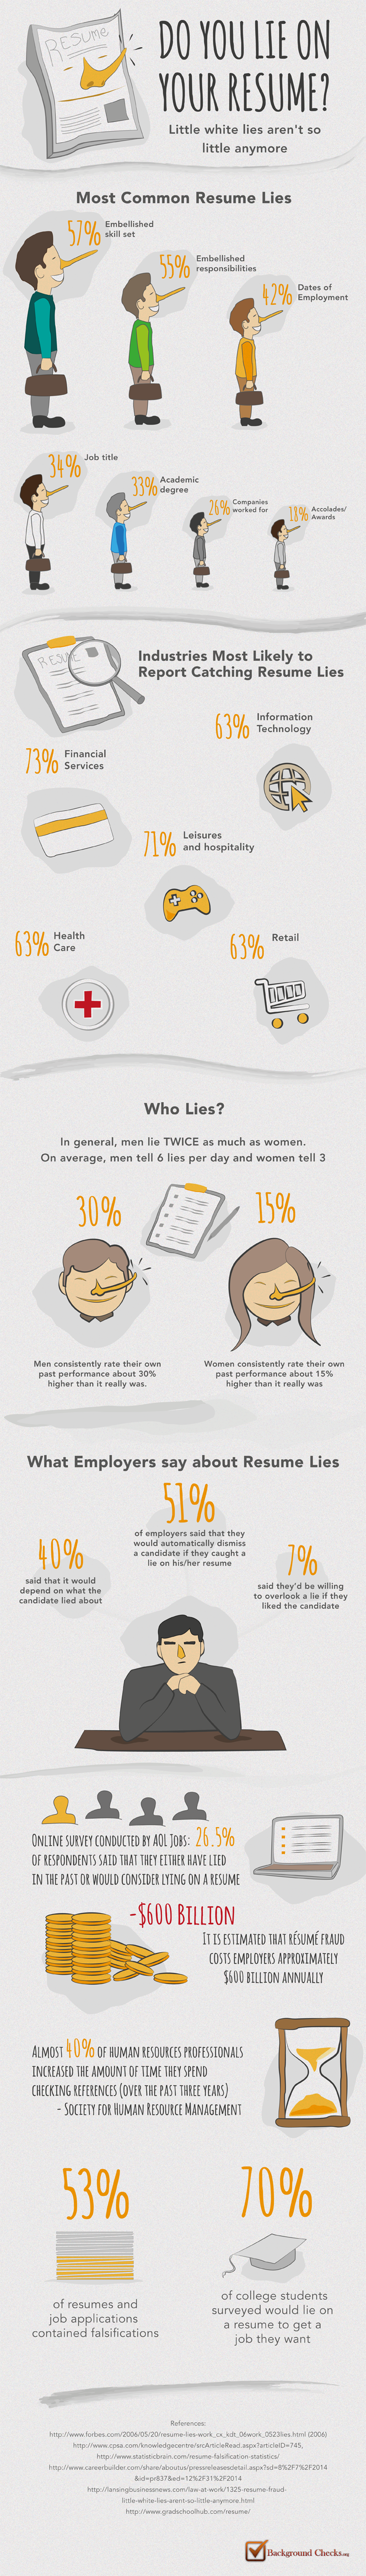 lying-on-resumes_.png